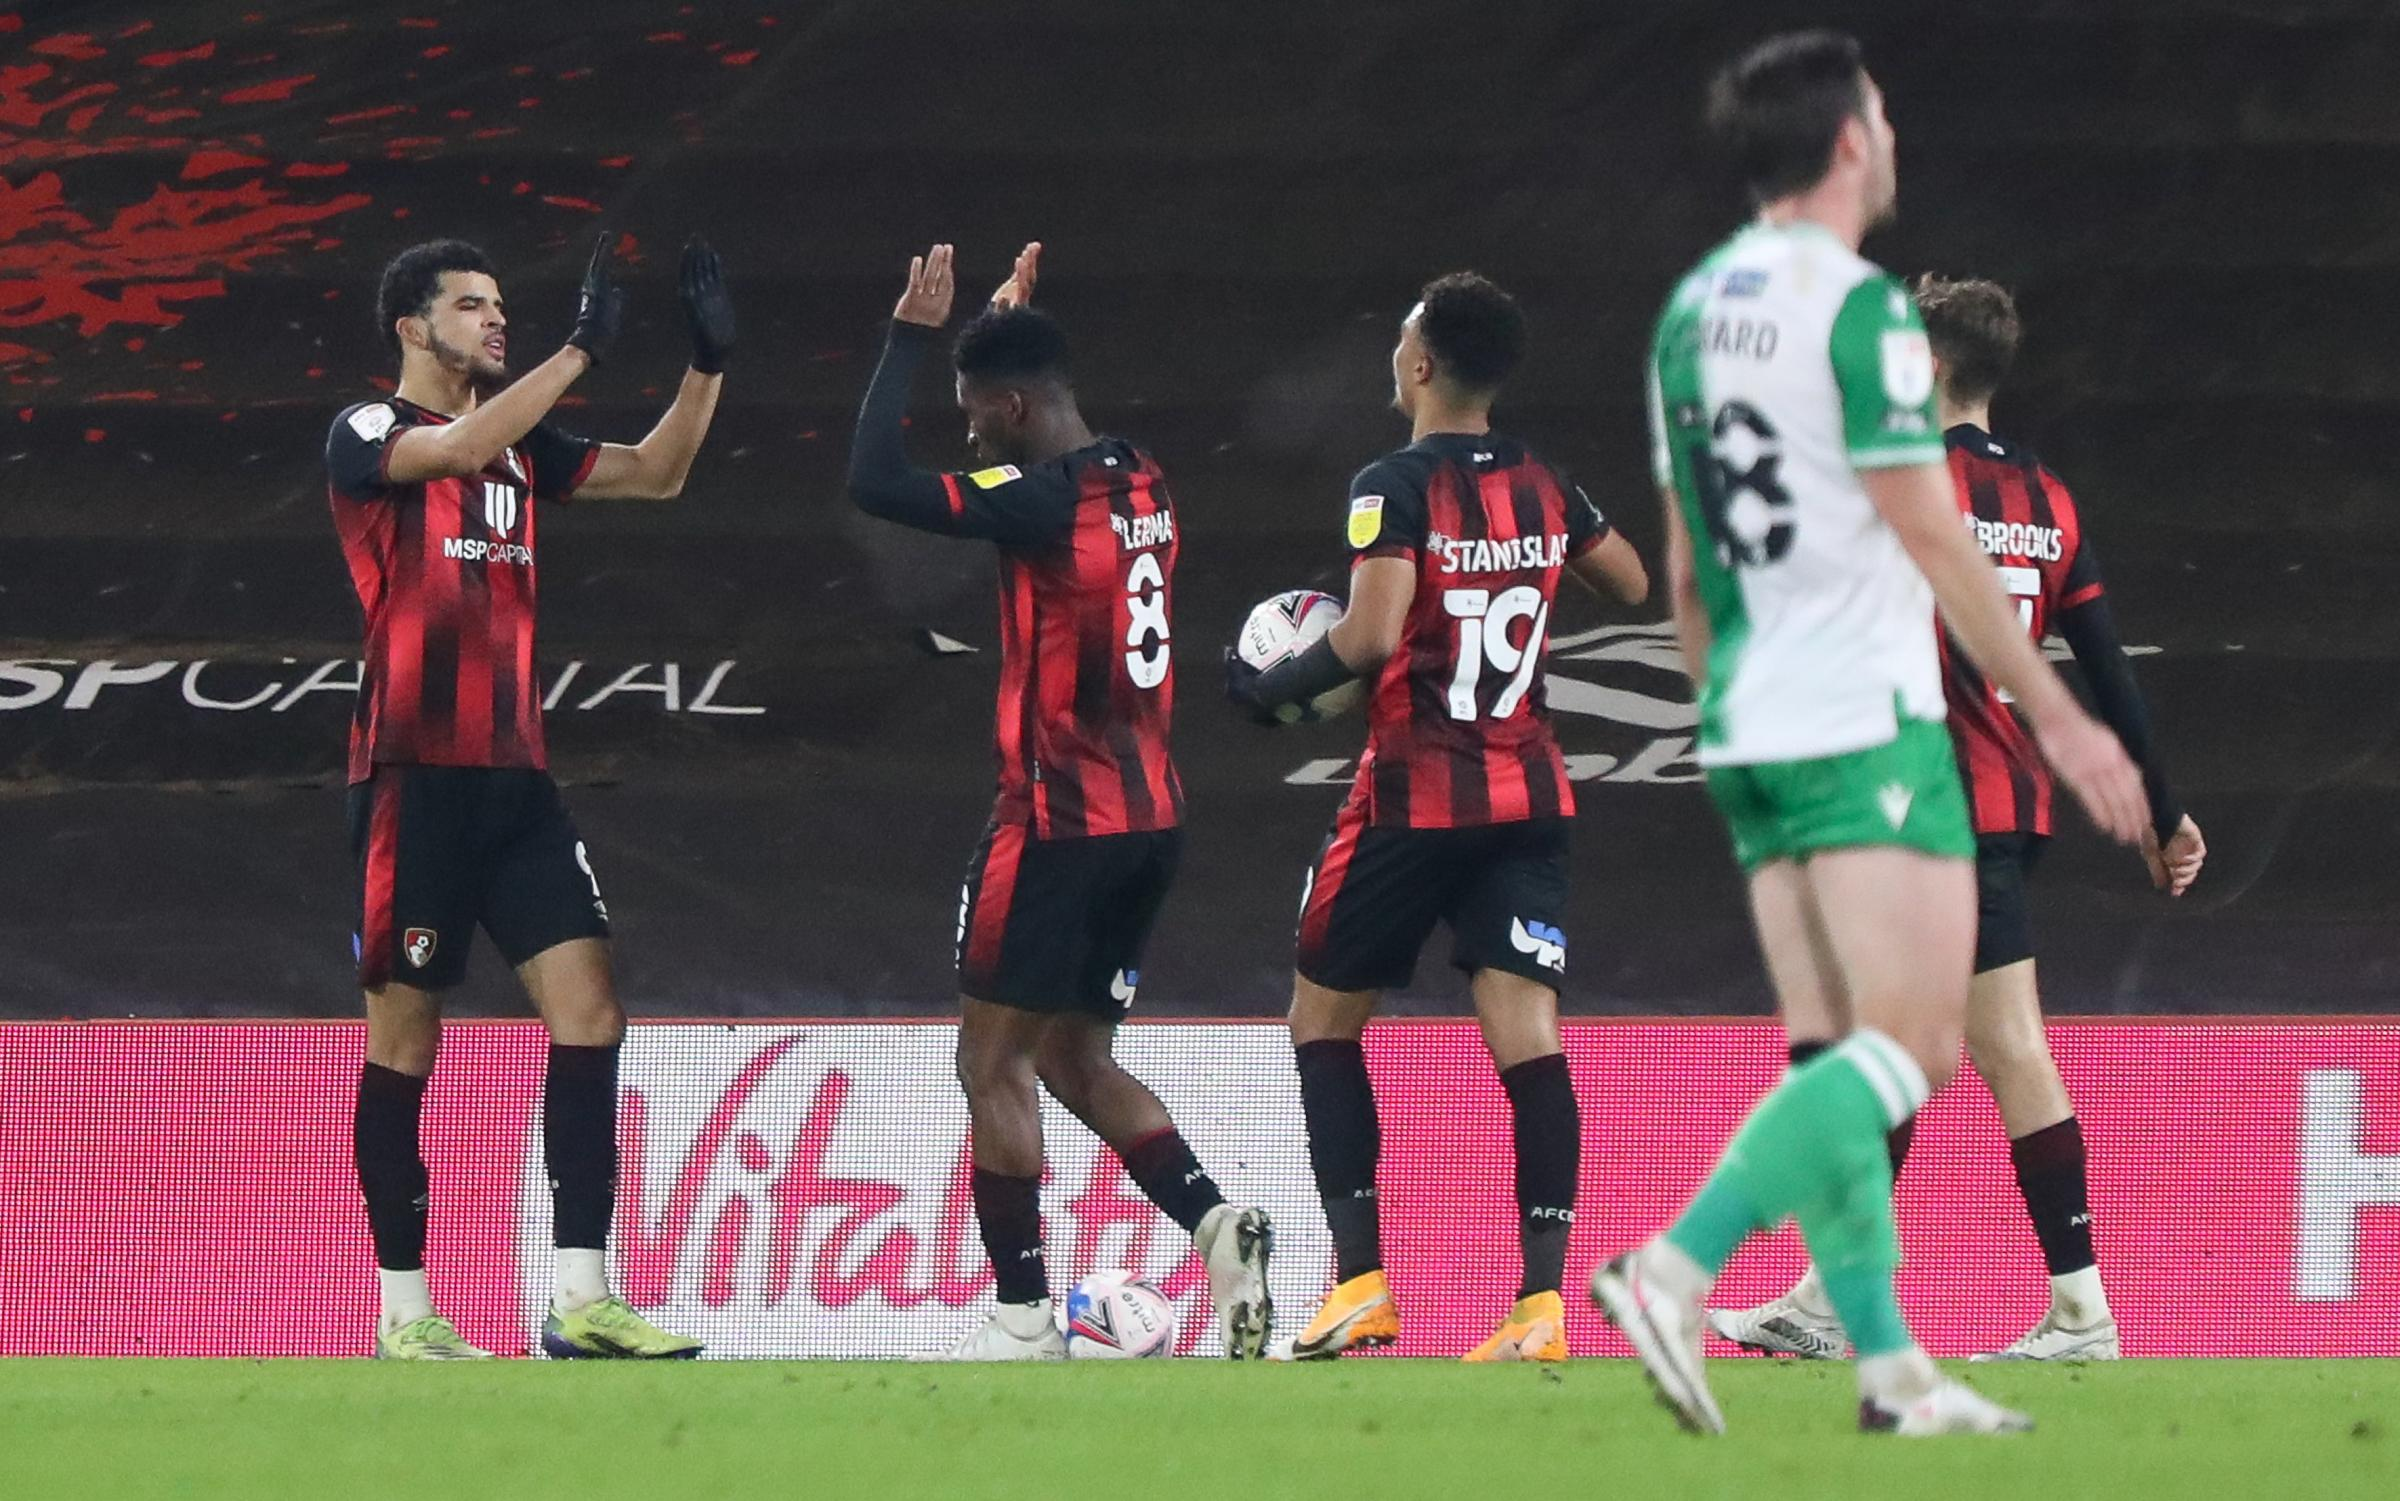 Tindall calls on Cherries players to curb goal celebrations